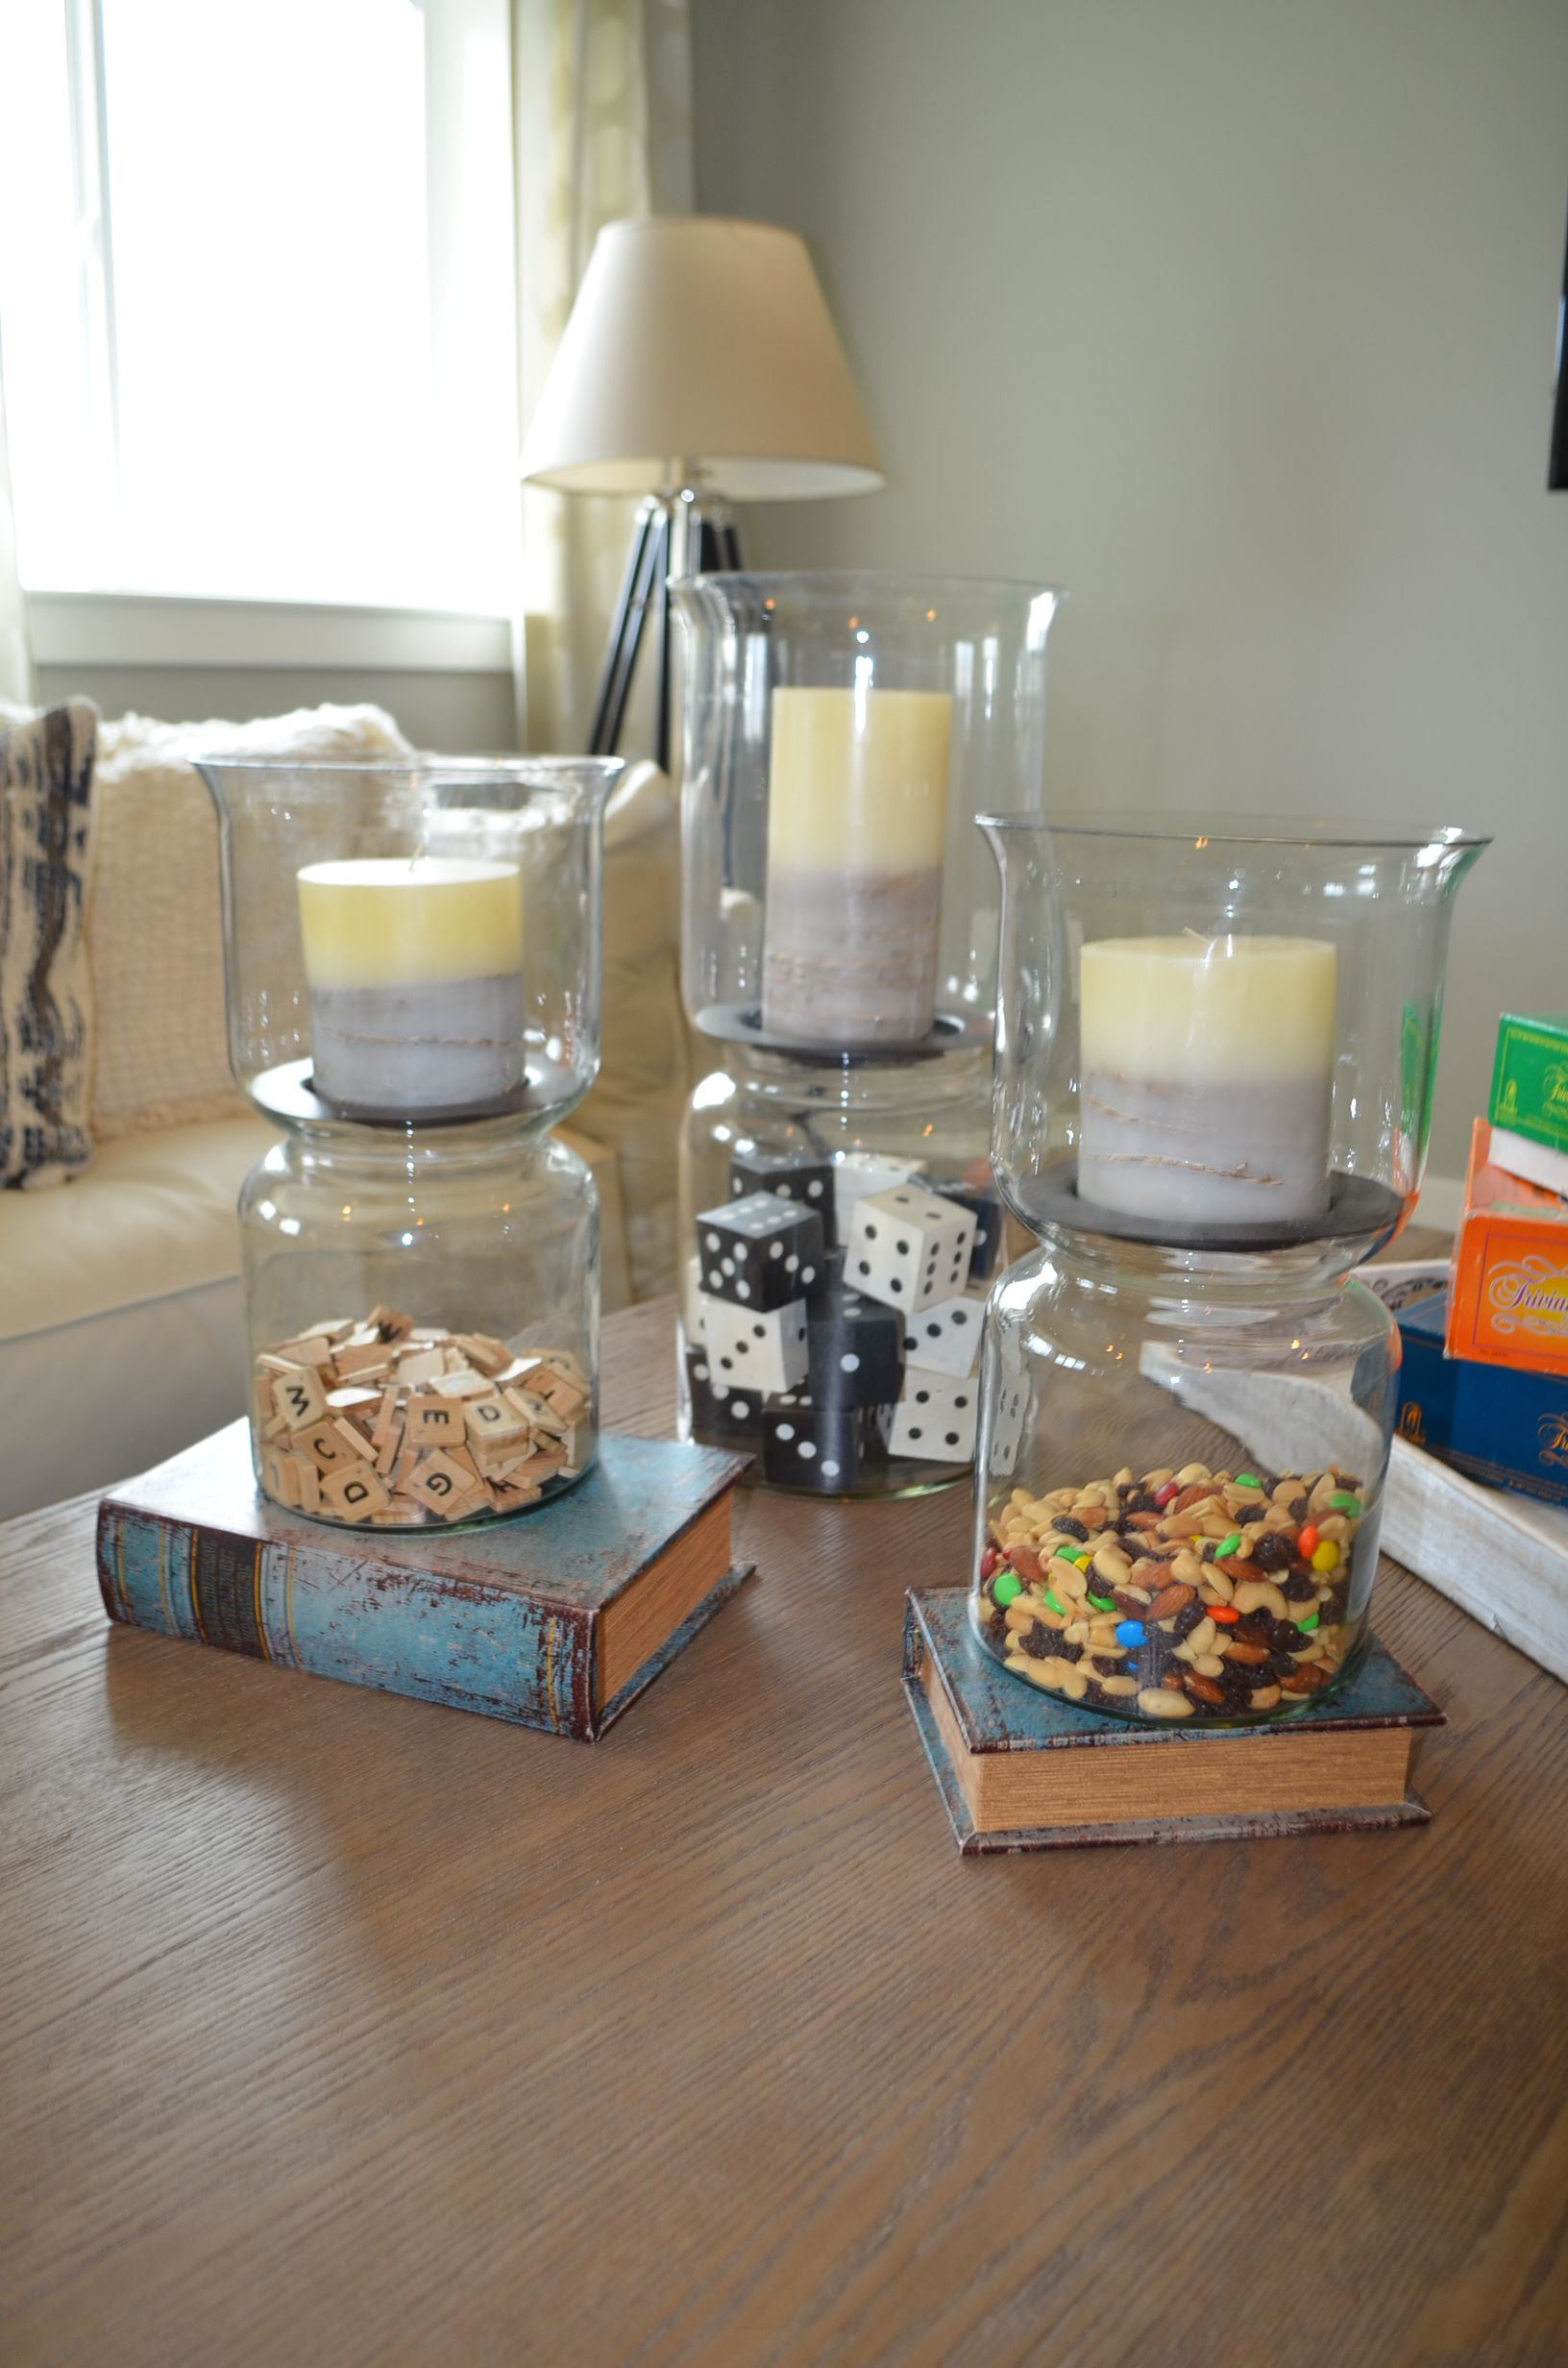 Room & 11 Awesome Ways to Decorate Your Tabletops | Game pieces Unique and ...